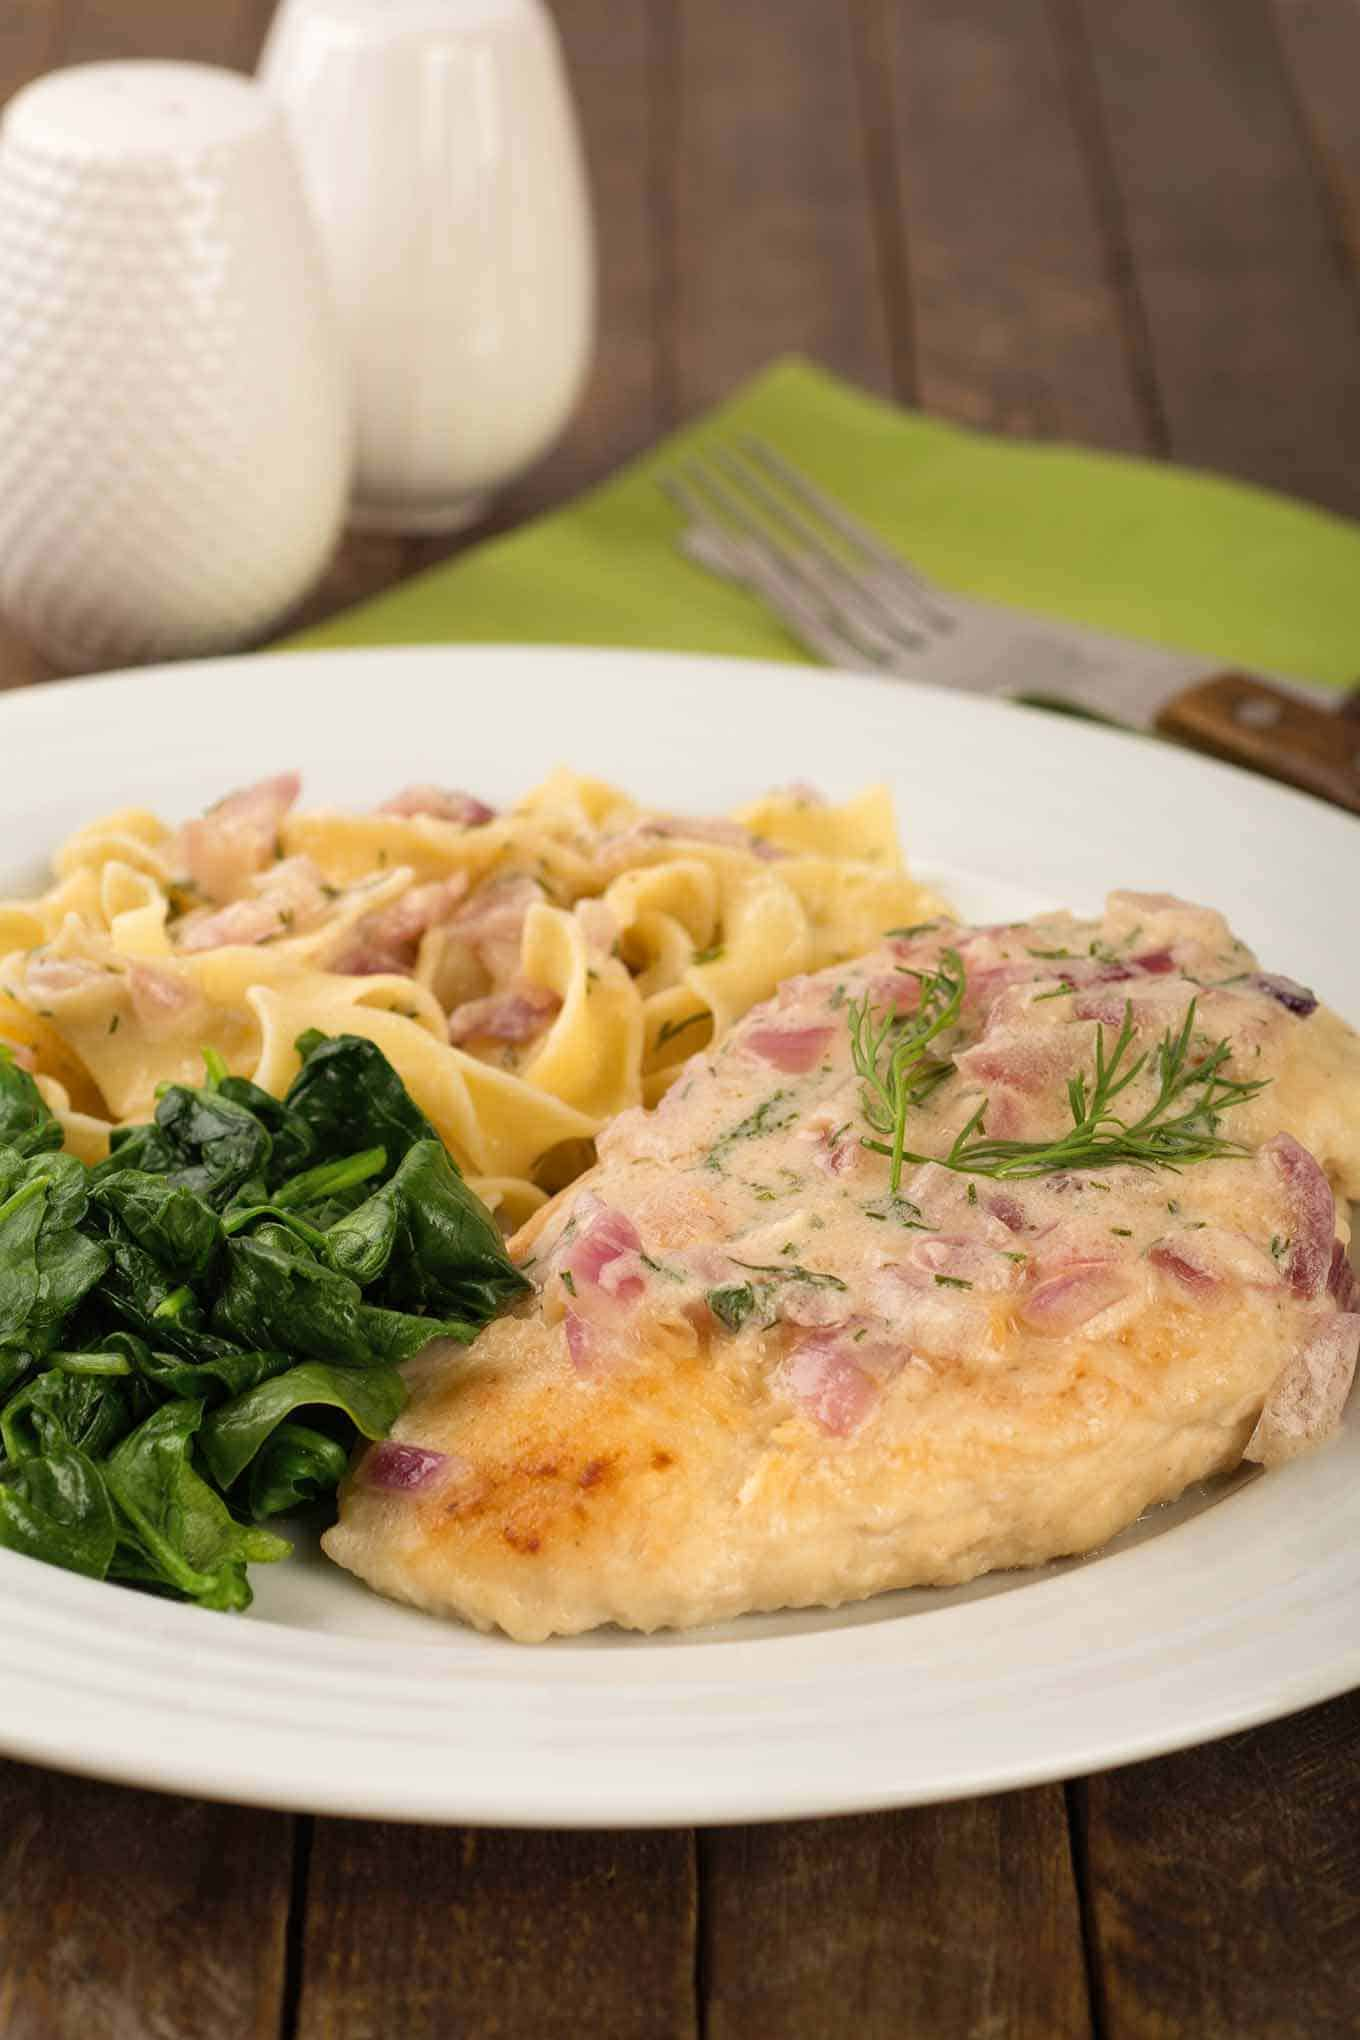 Chicken breast with onion and dill sauce on a plate with egg noodles and spinach.